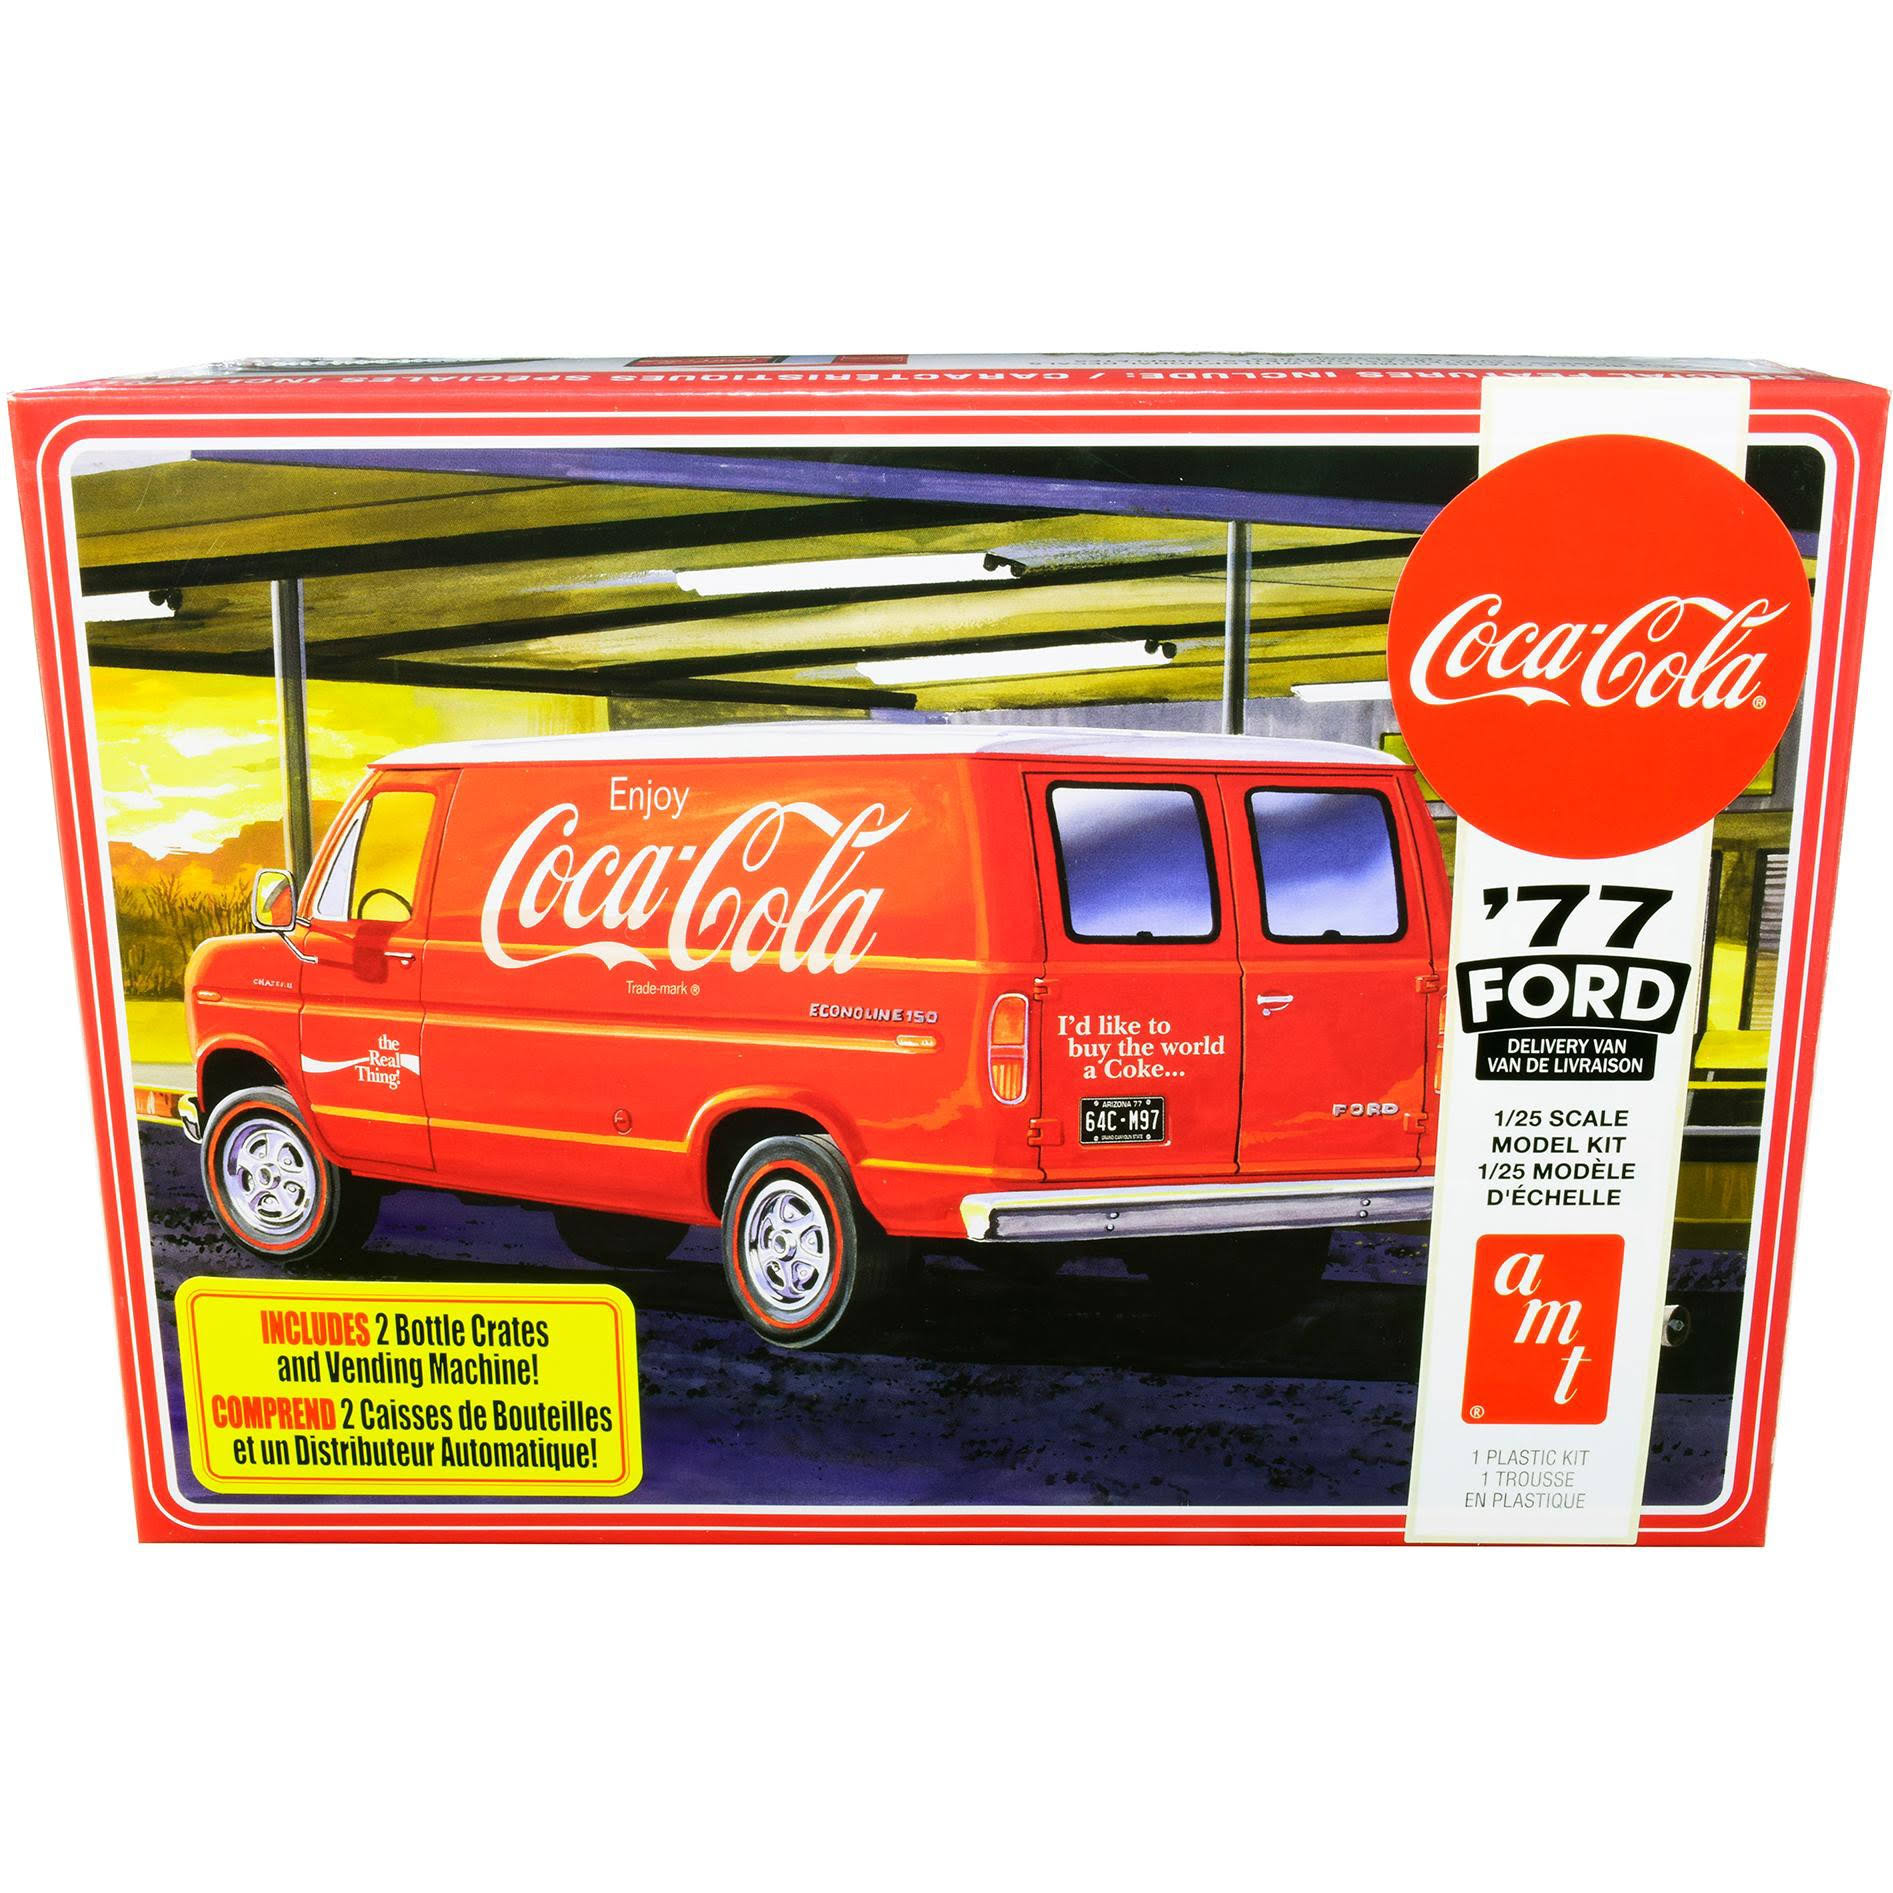 AMT 1173M 1977 Coca-Cola Ford Van Model Kit - 1:25 Scale, with Vending Machine